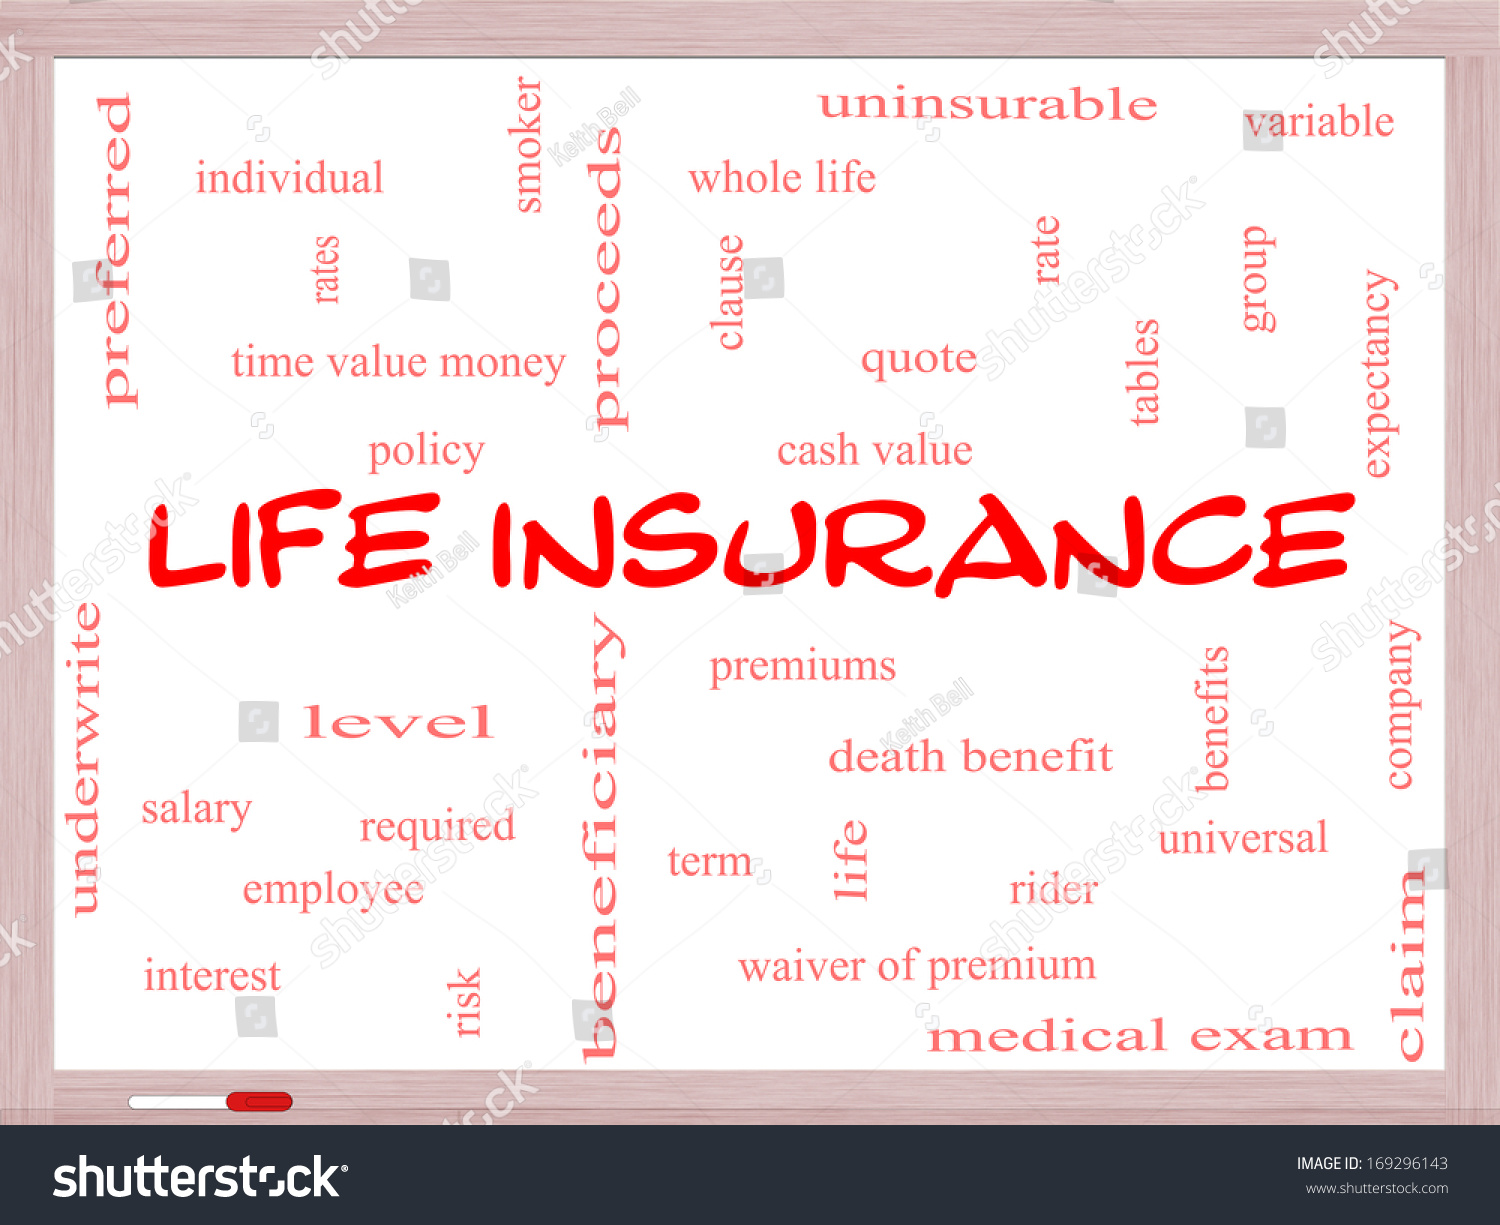 Whole Term Life Insurance Quotes Life Insurance Word Cloud Concept On Stock Illustration 169296143